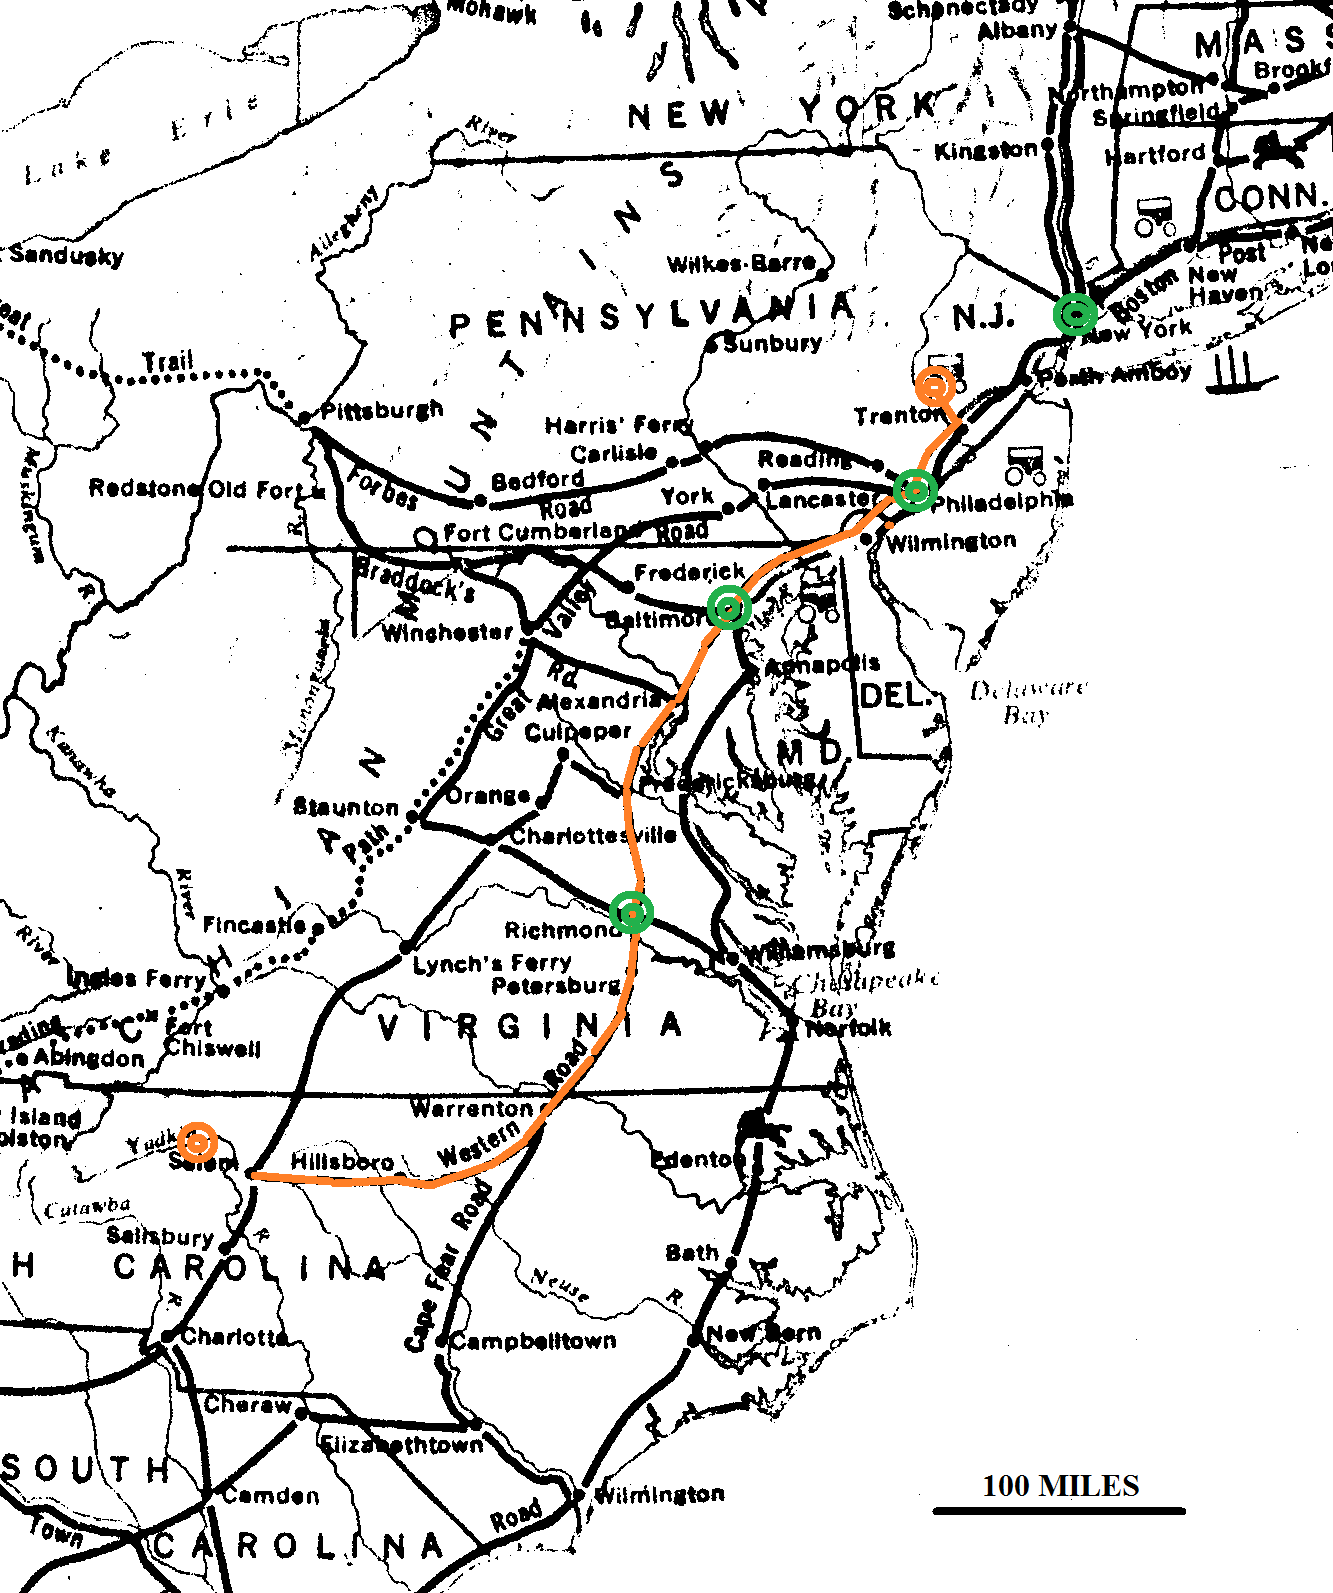 main us roads in 1790 the orange circles show the locations of bv the orange line shows the approximate route bv took to north carolina